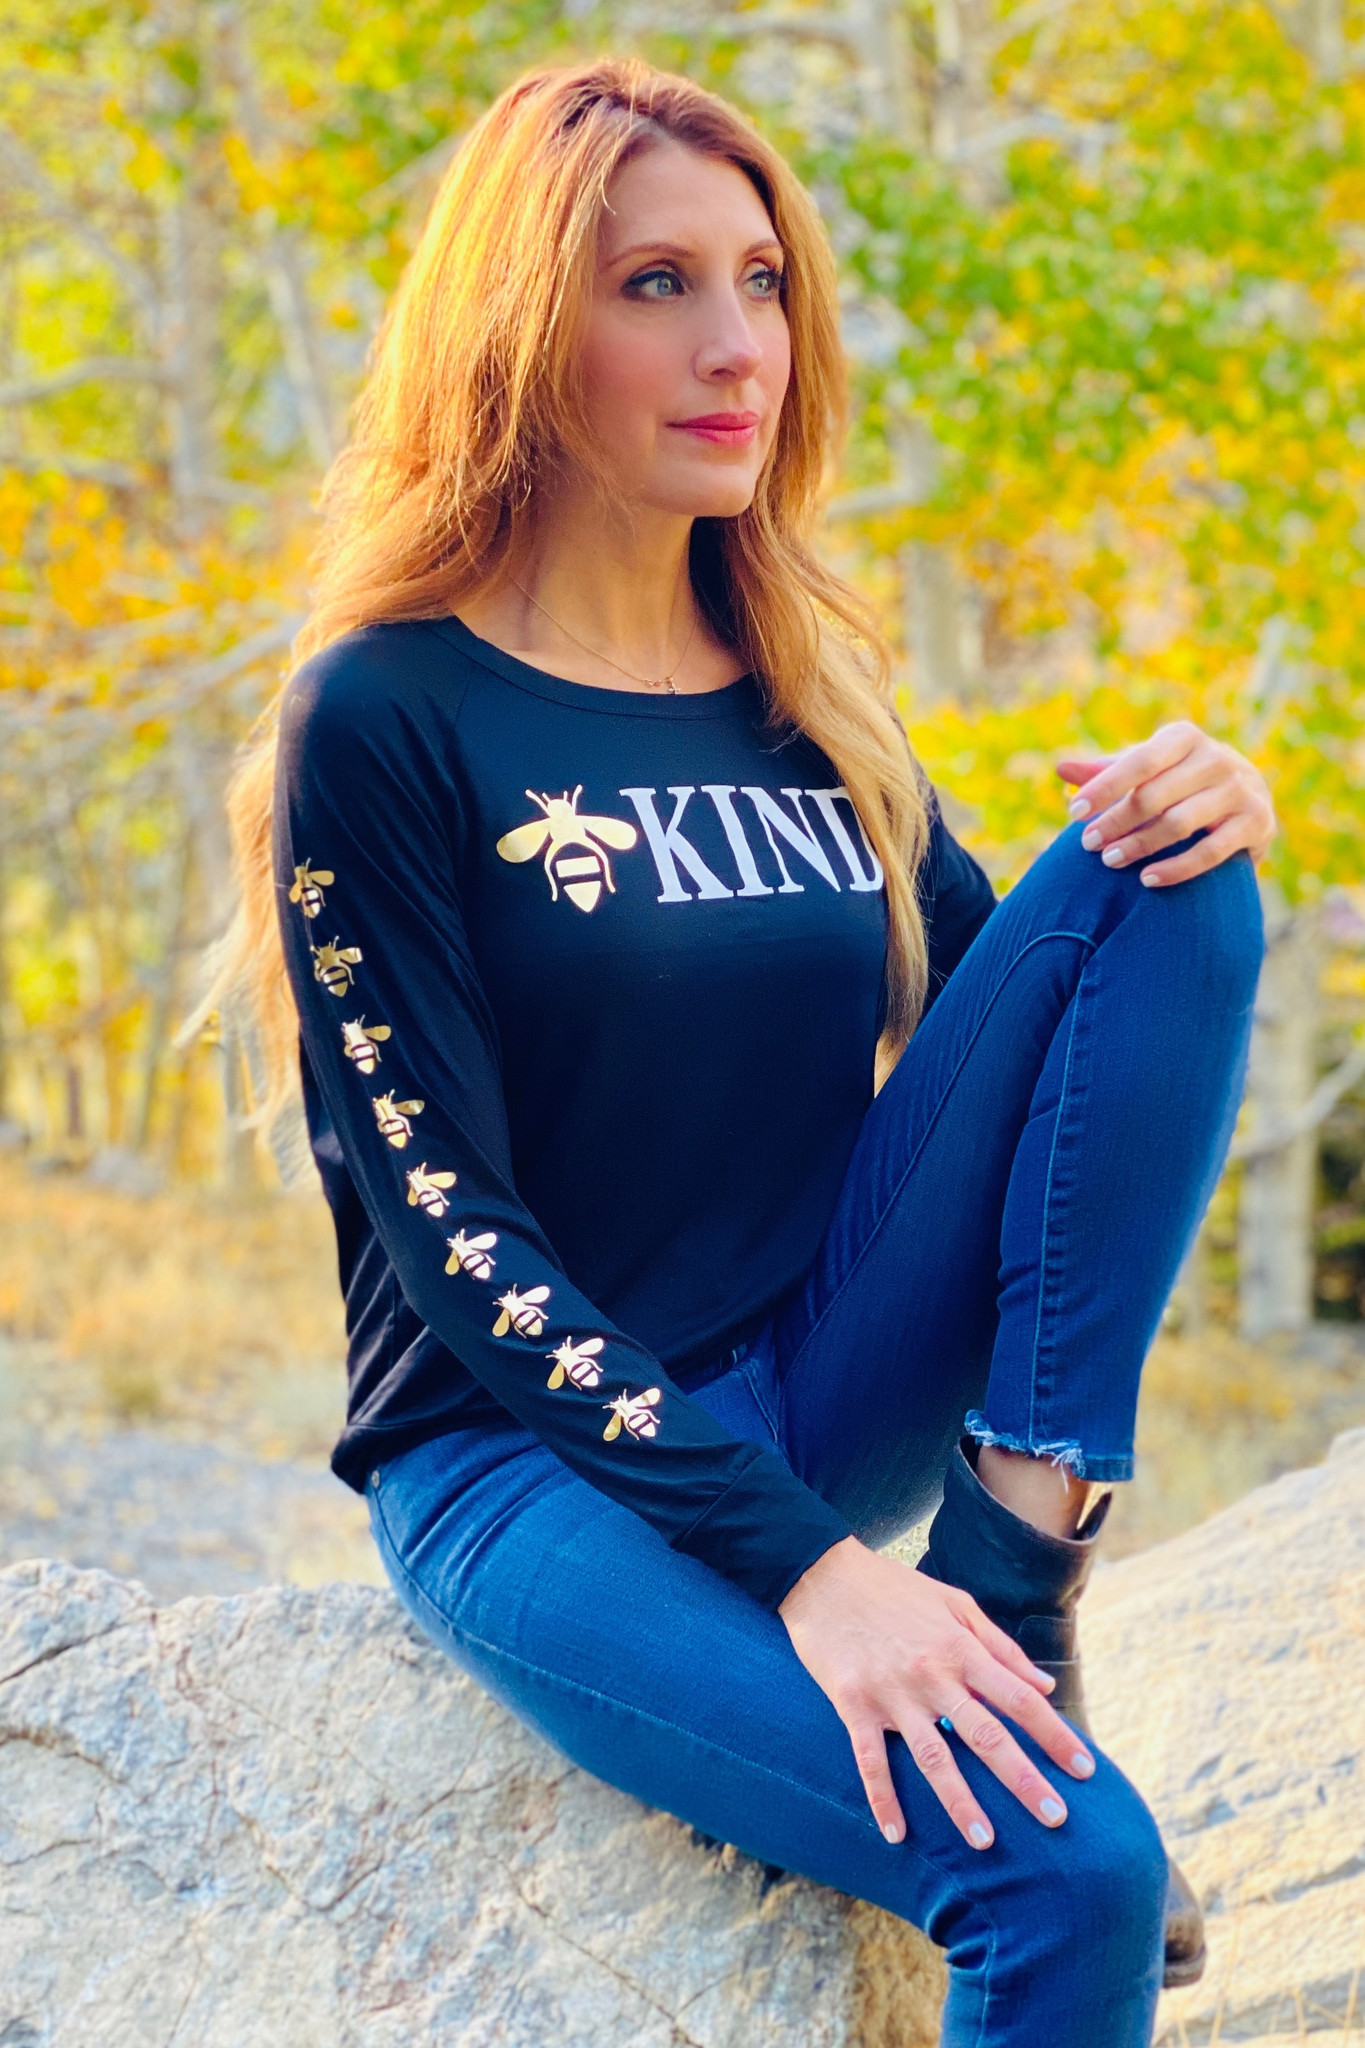 BEE KIND L/S TEE with a BEE'S GRAPHIC IN GOLD FOIL on ARM (Black)